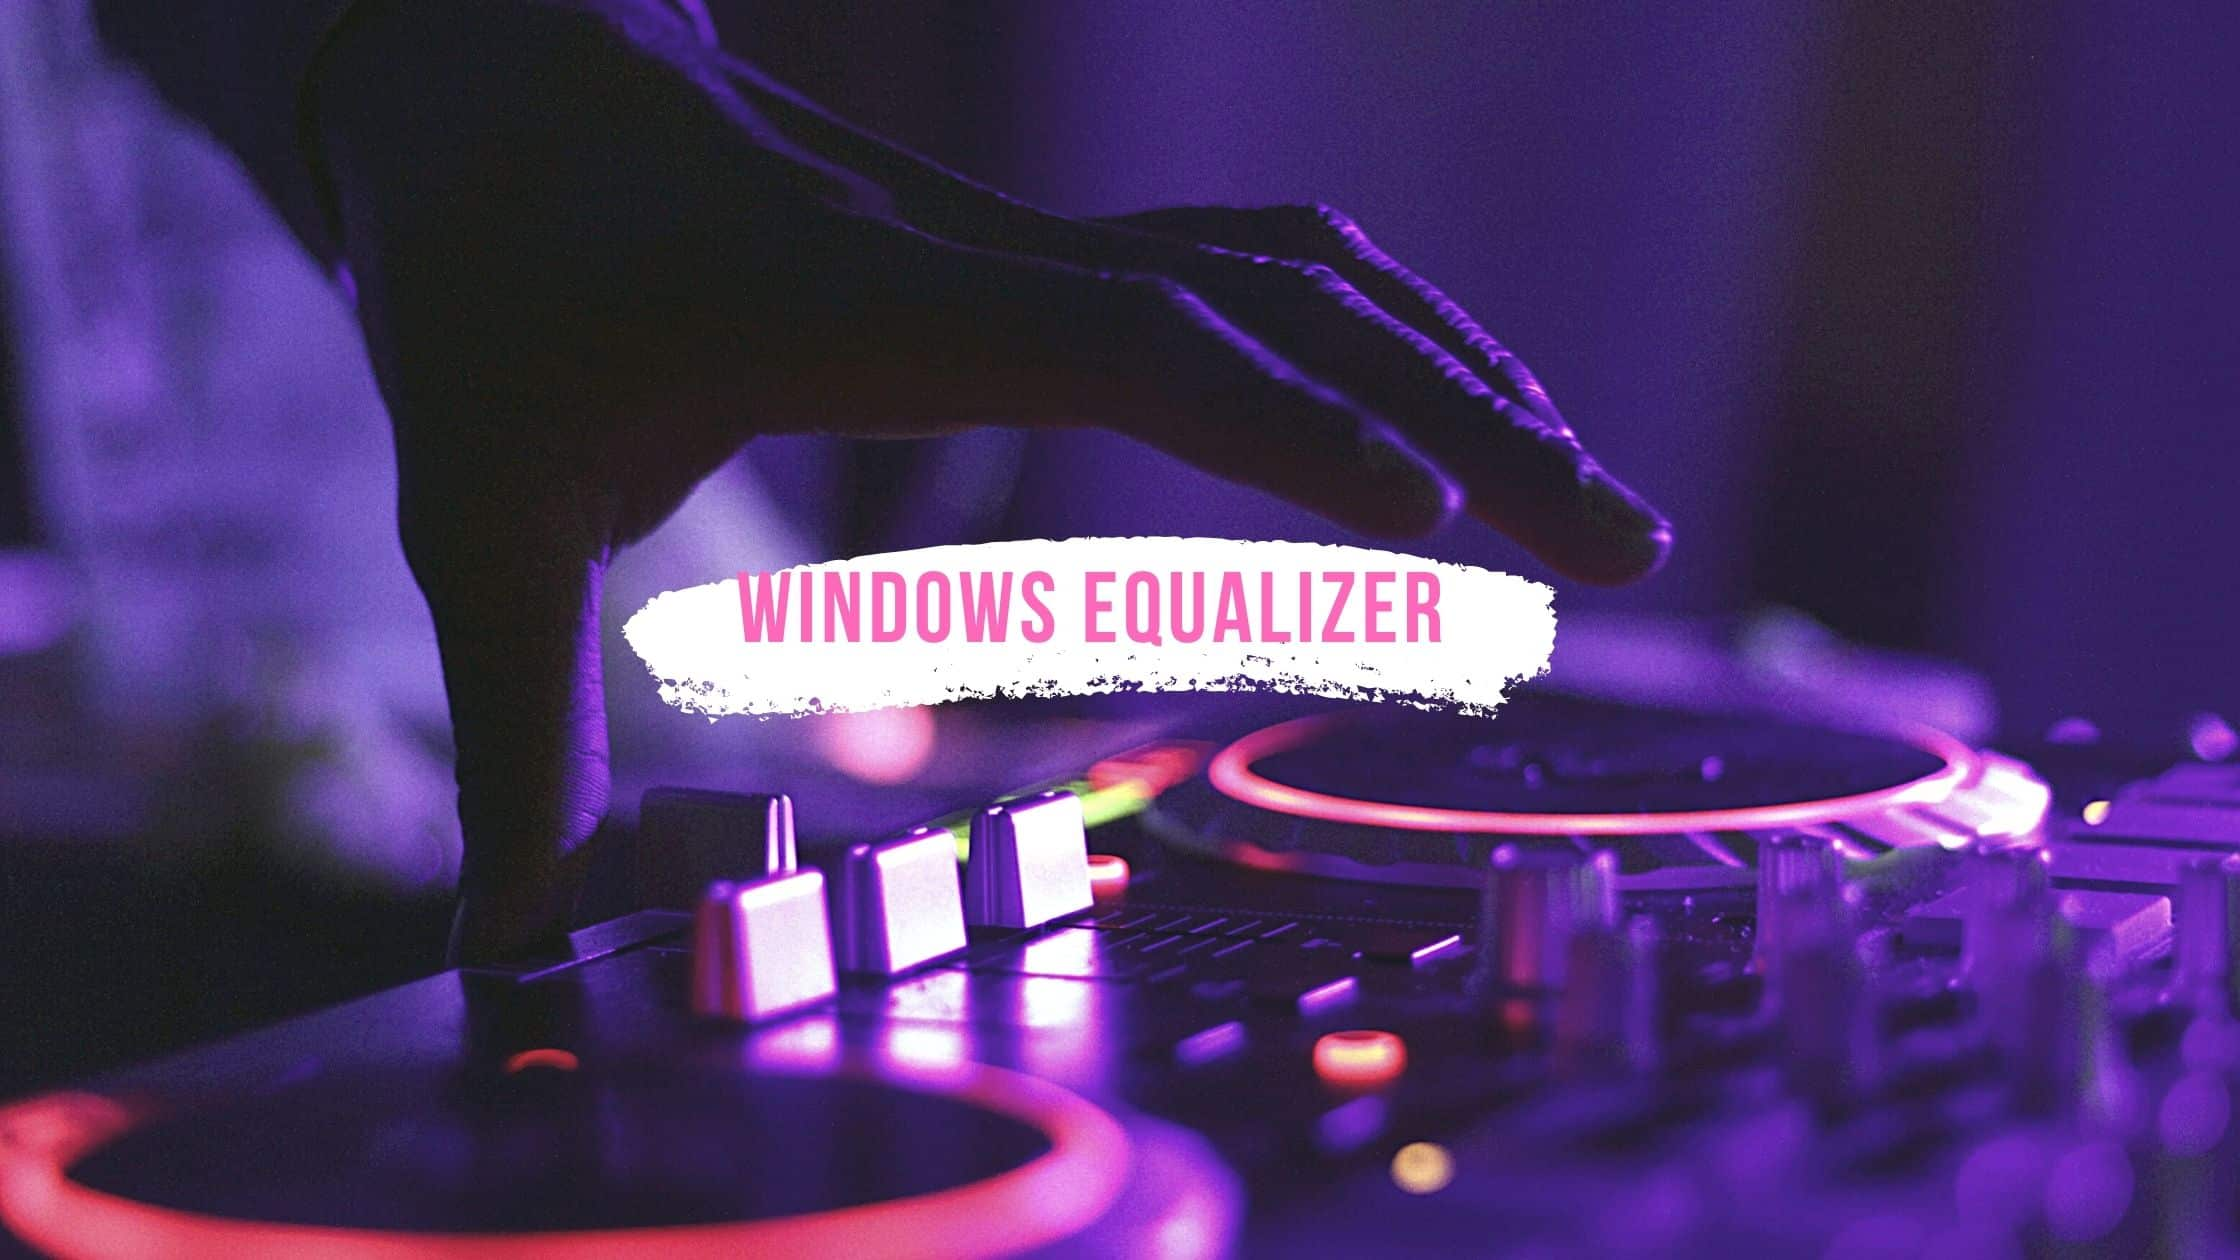 Best Windows 10 Equalizer to Use on Your PC in 2021